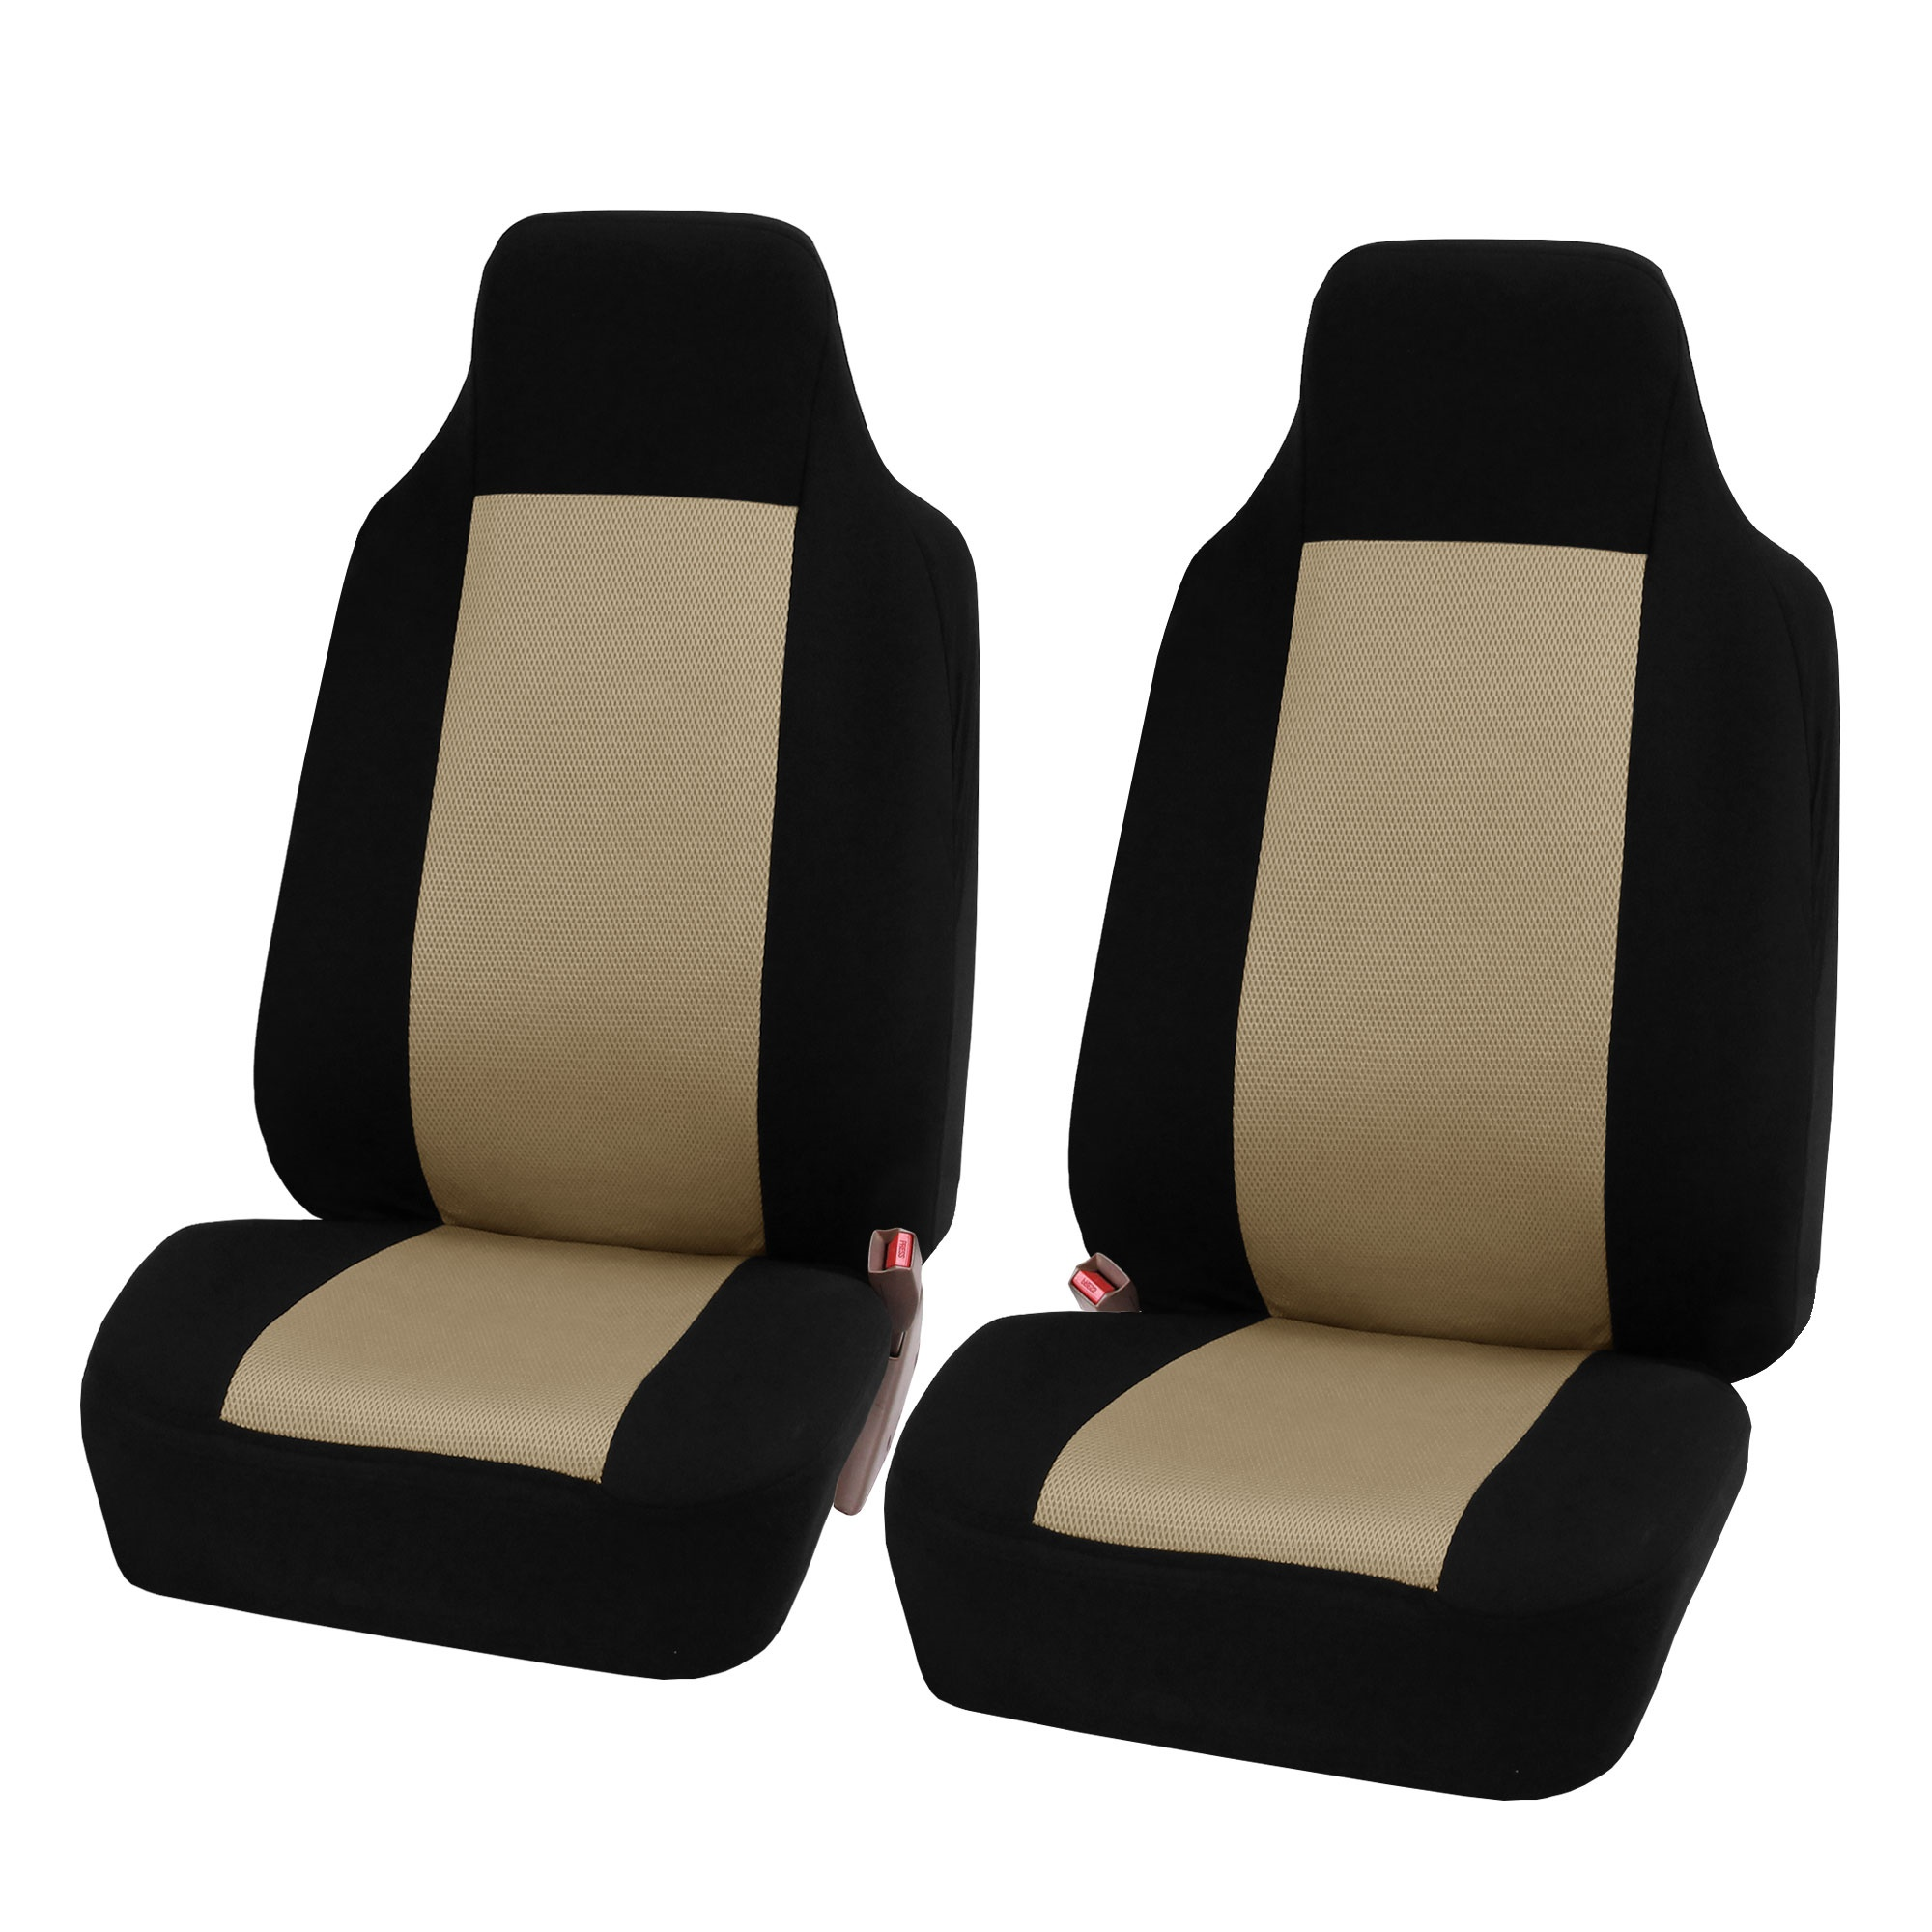 FH Group 3D Air-mesh Car Seat Covers, Front Set, Beige and Black